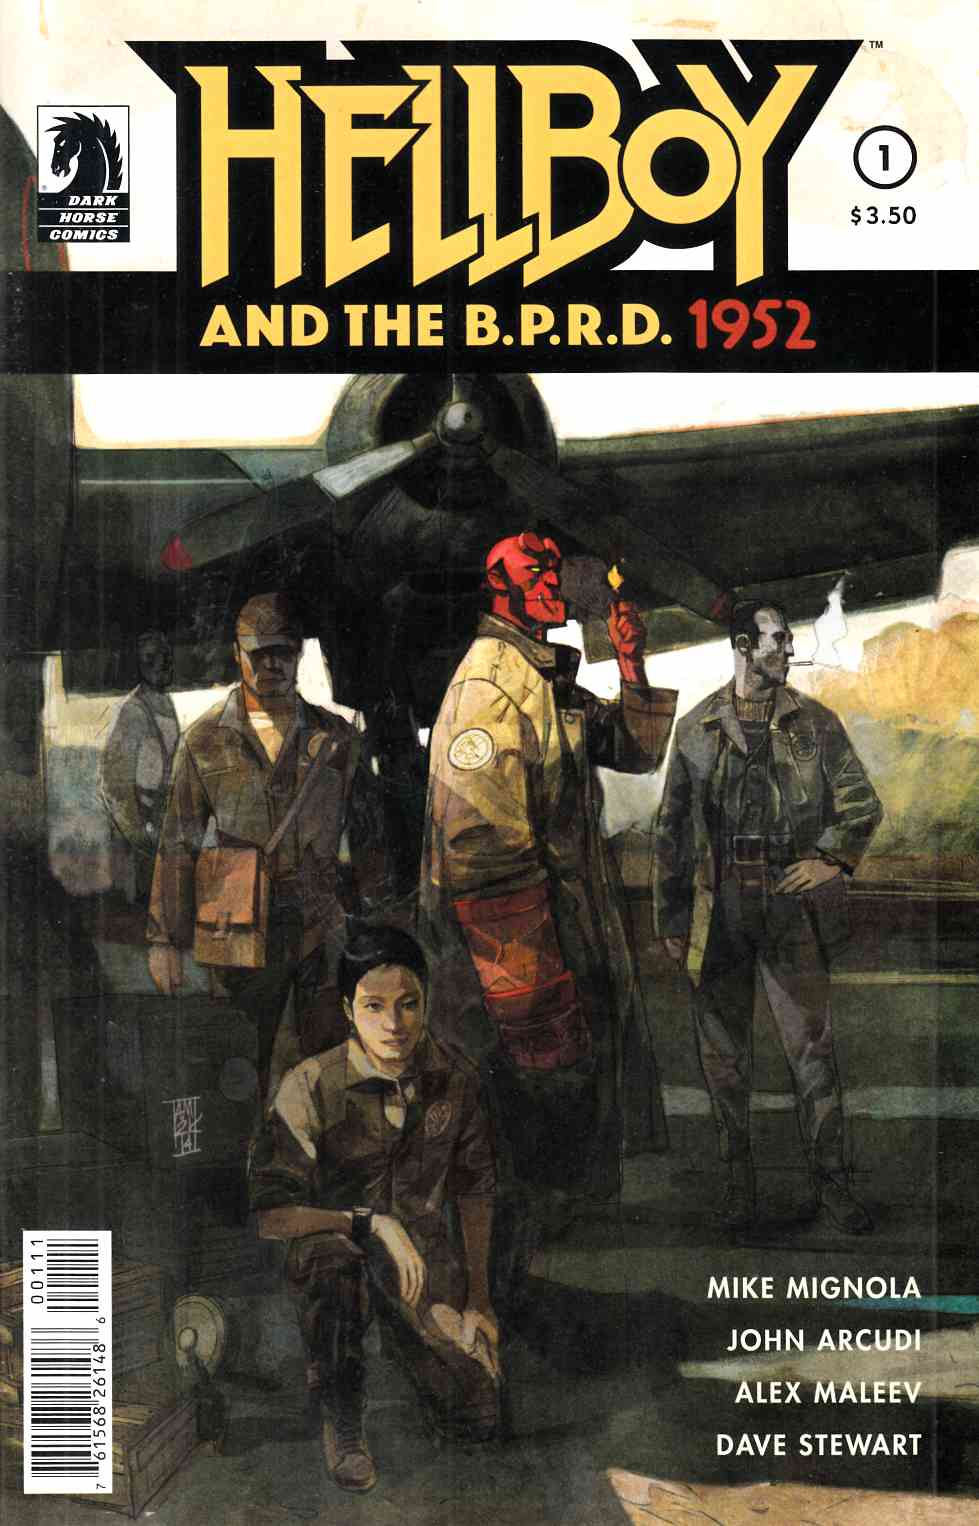 Hellboy and The BPRD #1 1952 [Dark Horse Comic] THUMBNAIL